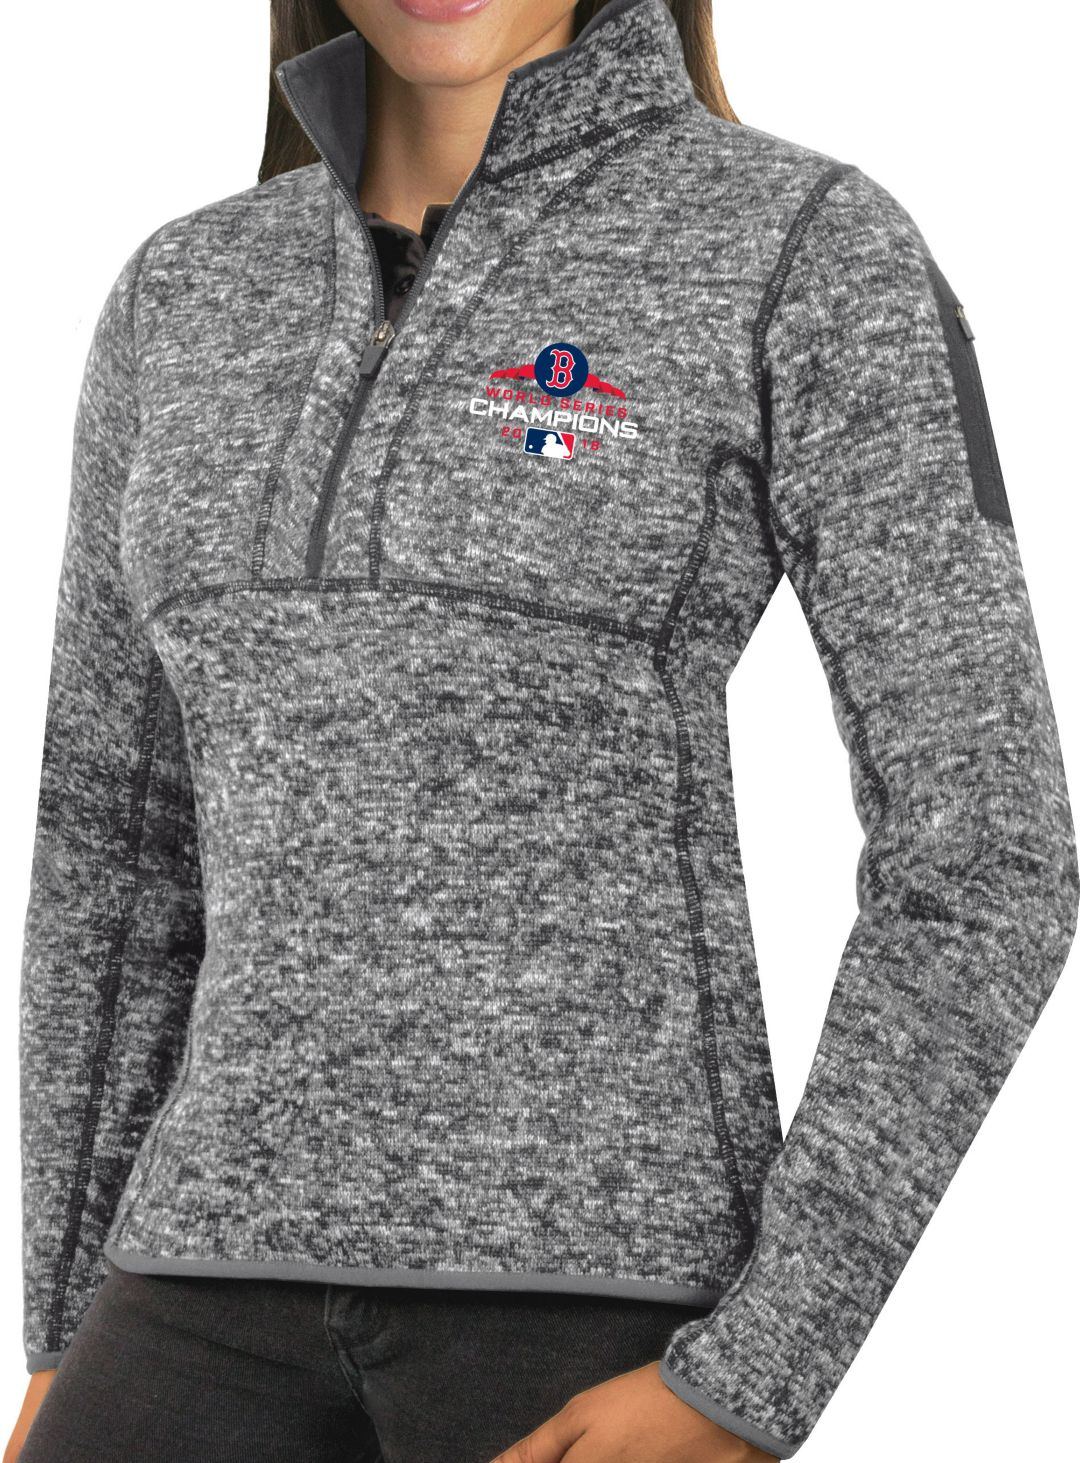 buy online d35f0 89555 Antigua Women's 2018 World Series Champions Boston Red Sox Grey Fortune  Half-Zip Pullover